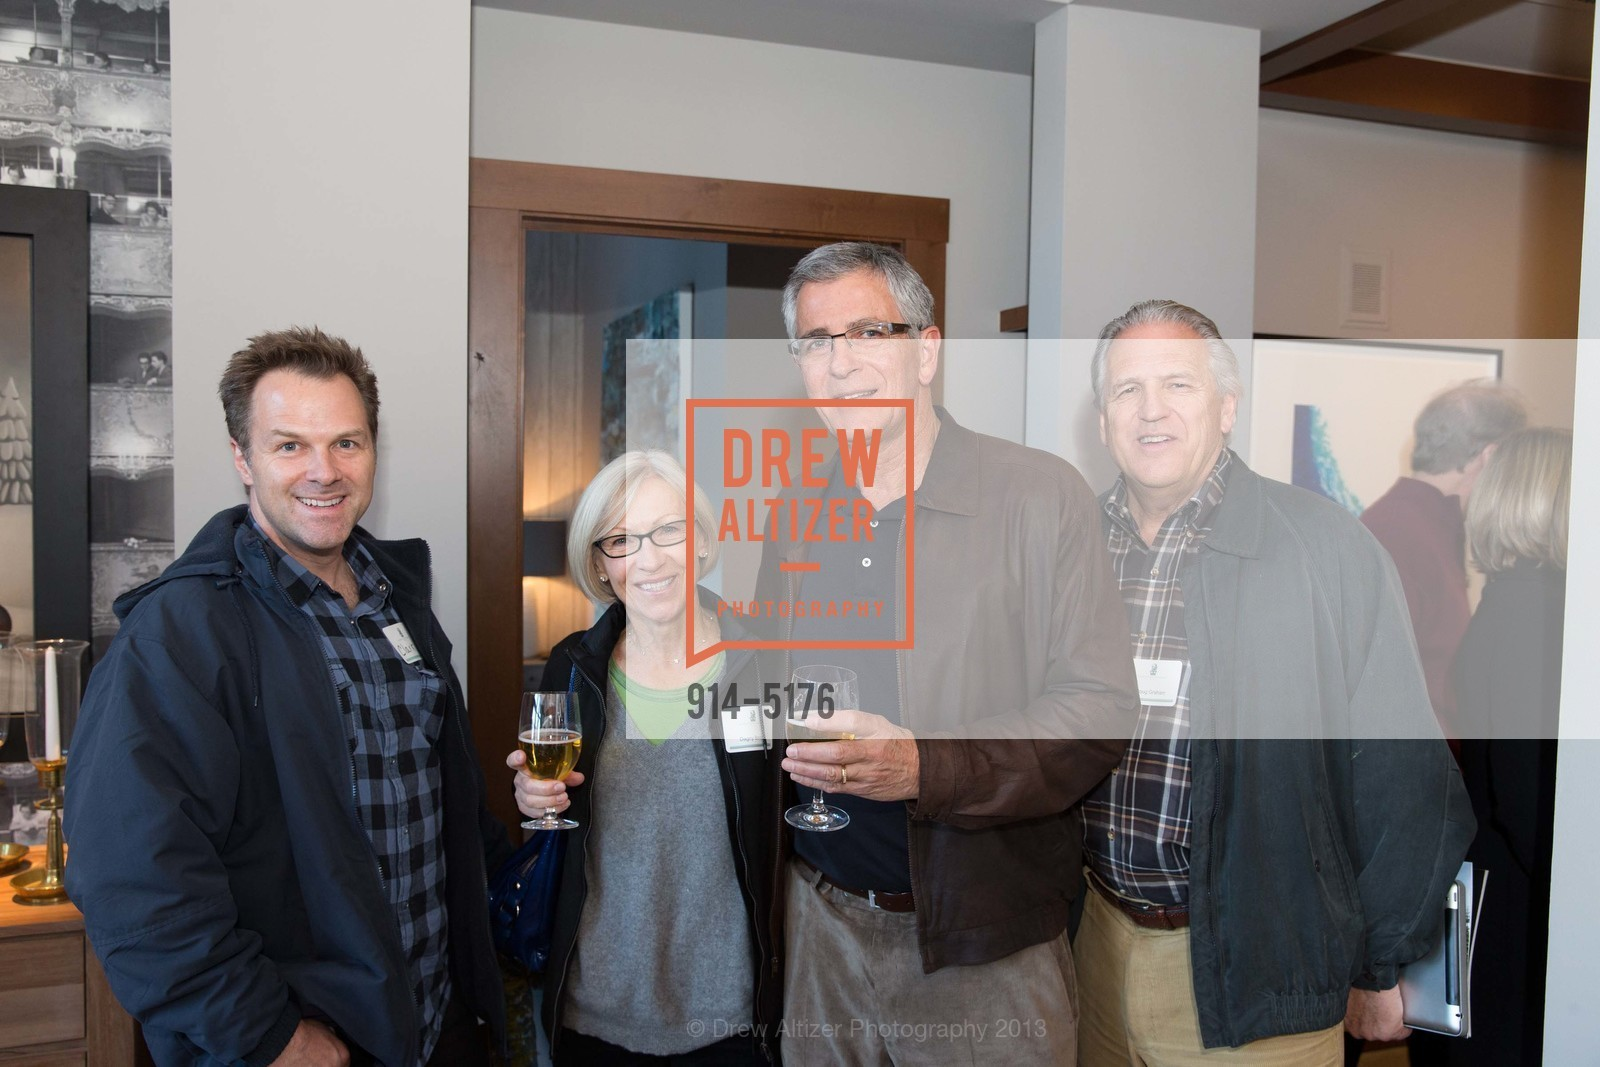 Clark Chuka, Dagny Borchich, John Borchich, Doug Graham, Photo #914-5176